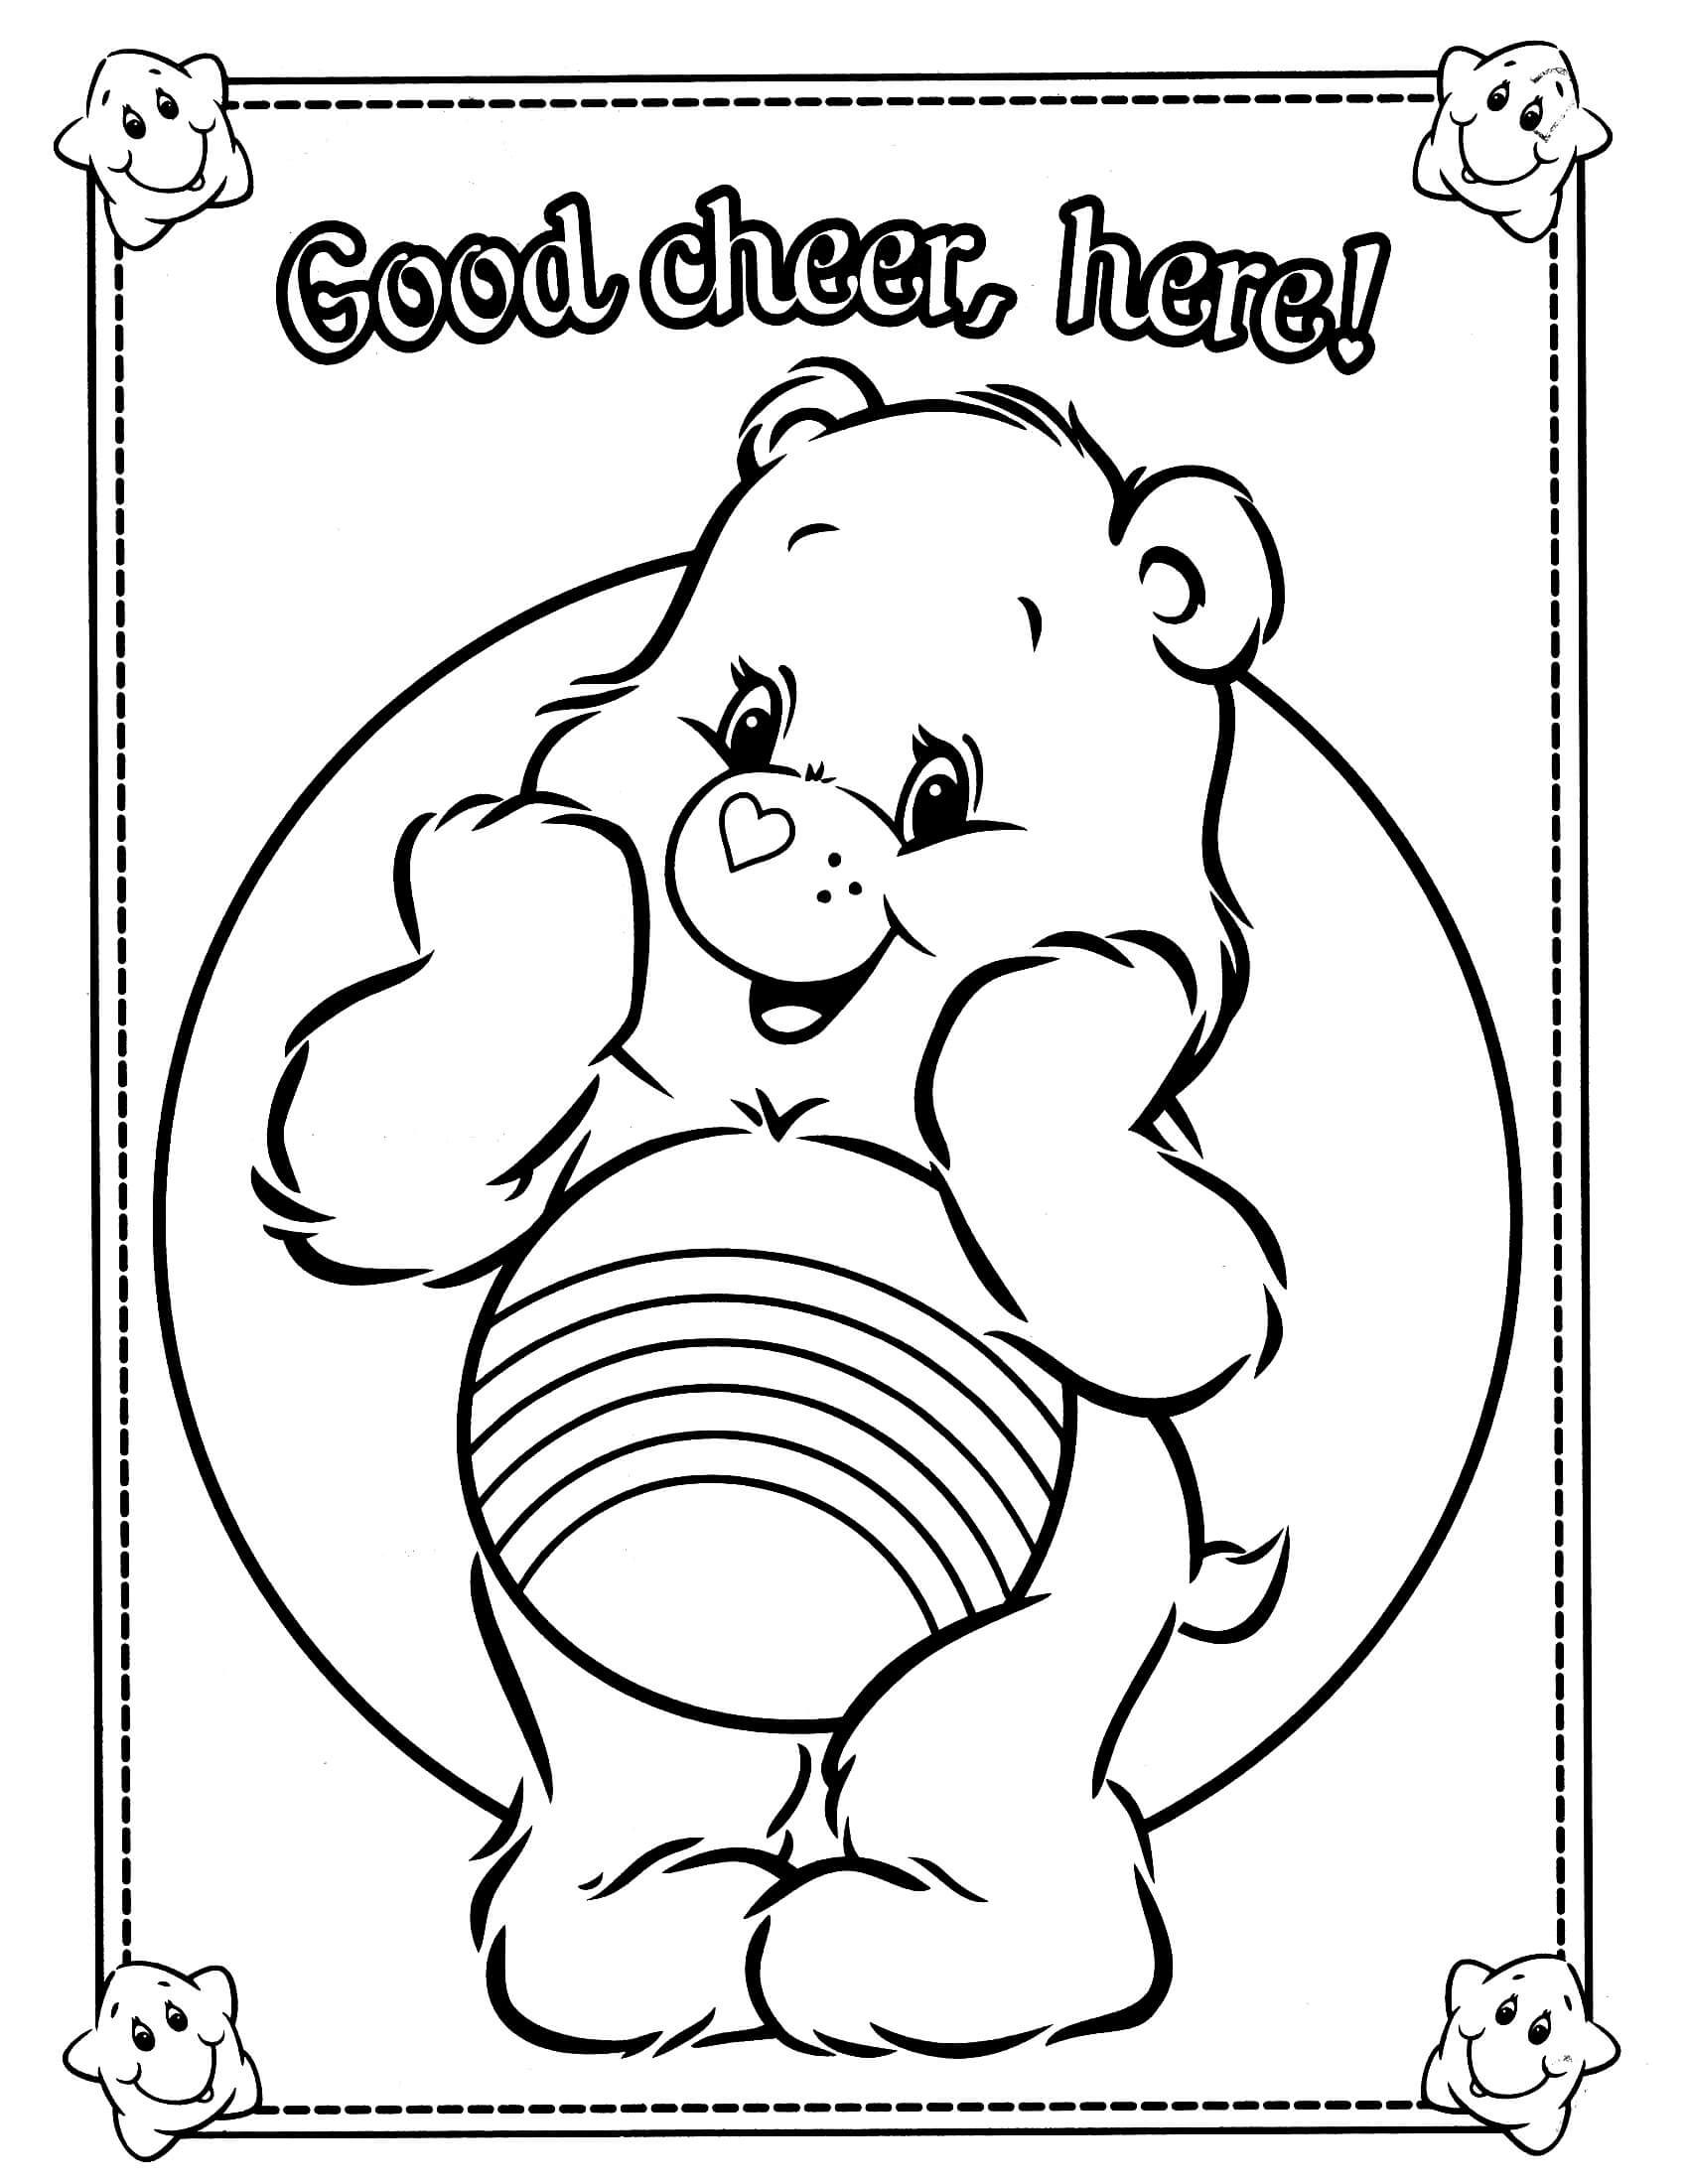 Care Bears Coloring Page Bear Coloring Pages Coloring Pages Cartoon Coloring Pages